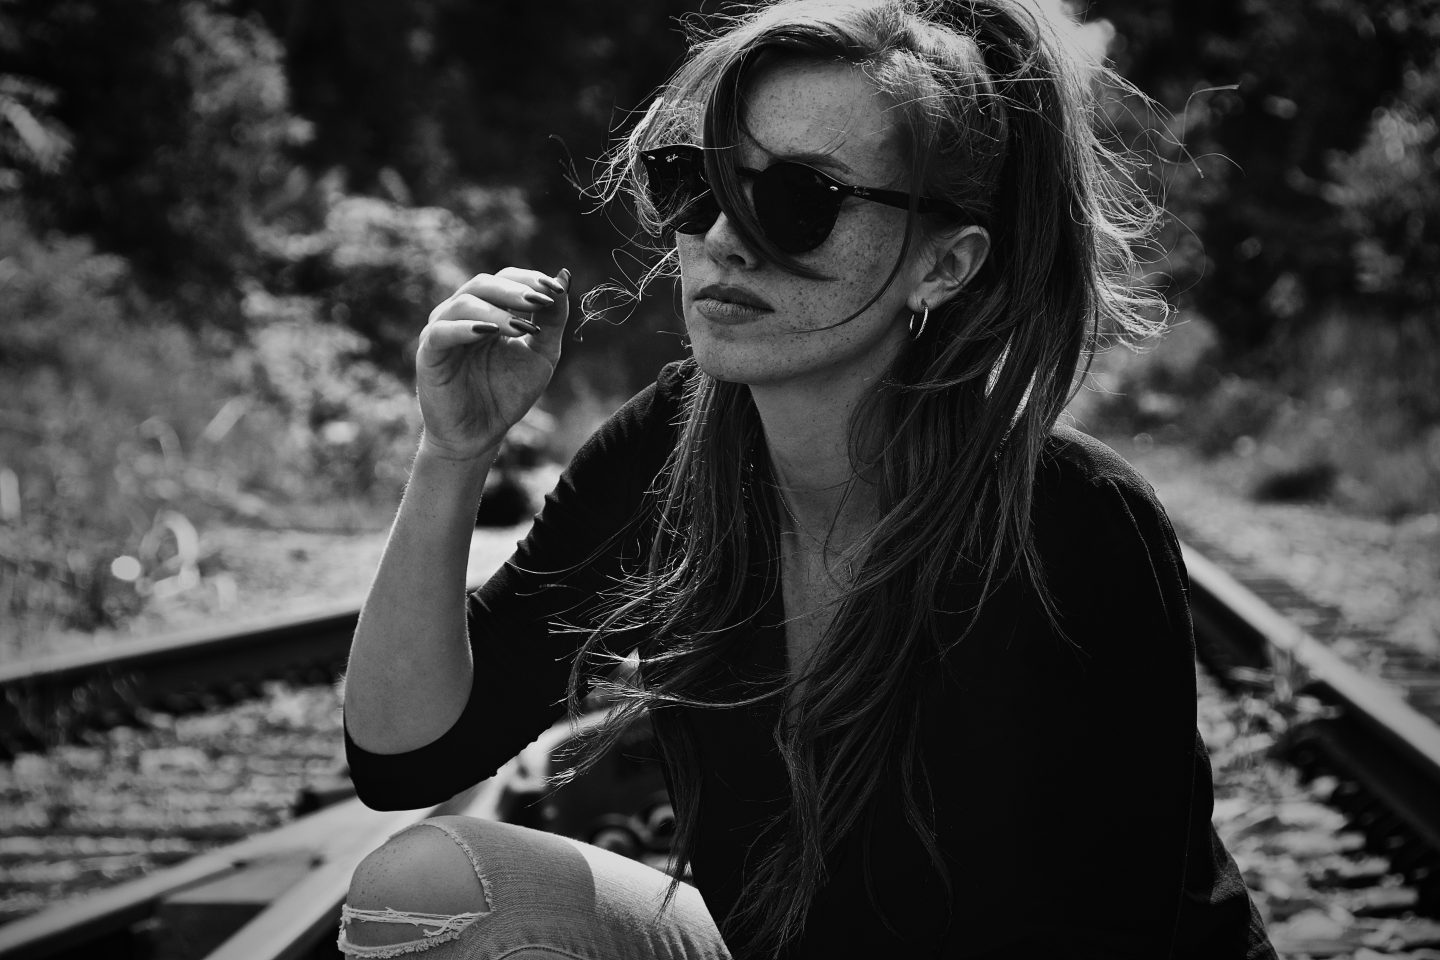 Genevieve sitting on train tracks wearing Ray Ban sunglasses for an editorial shoot for fashion news.